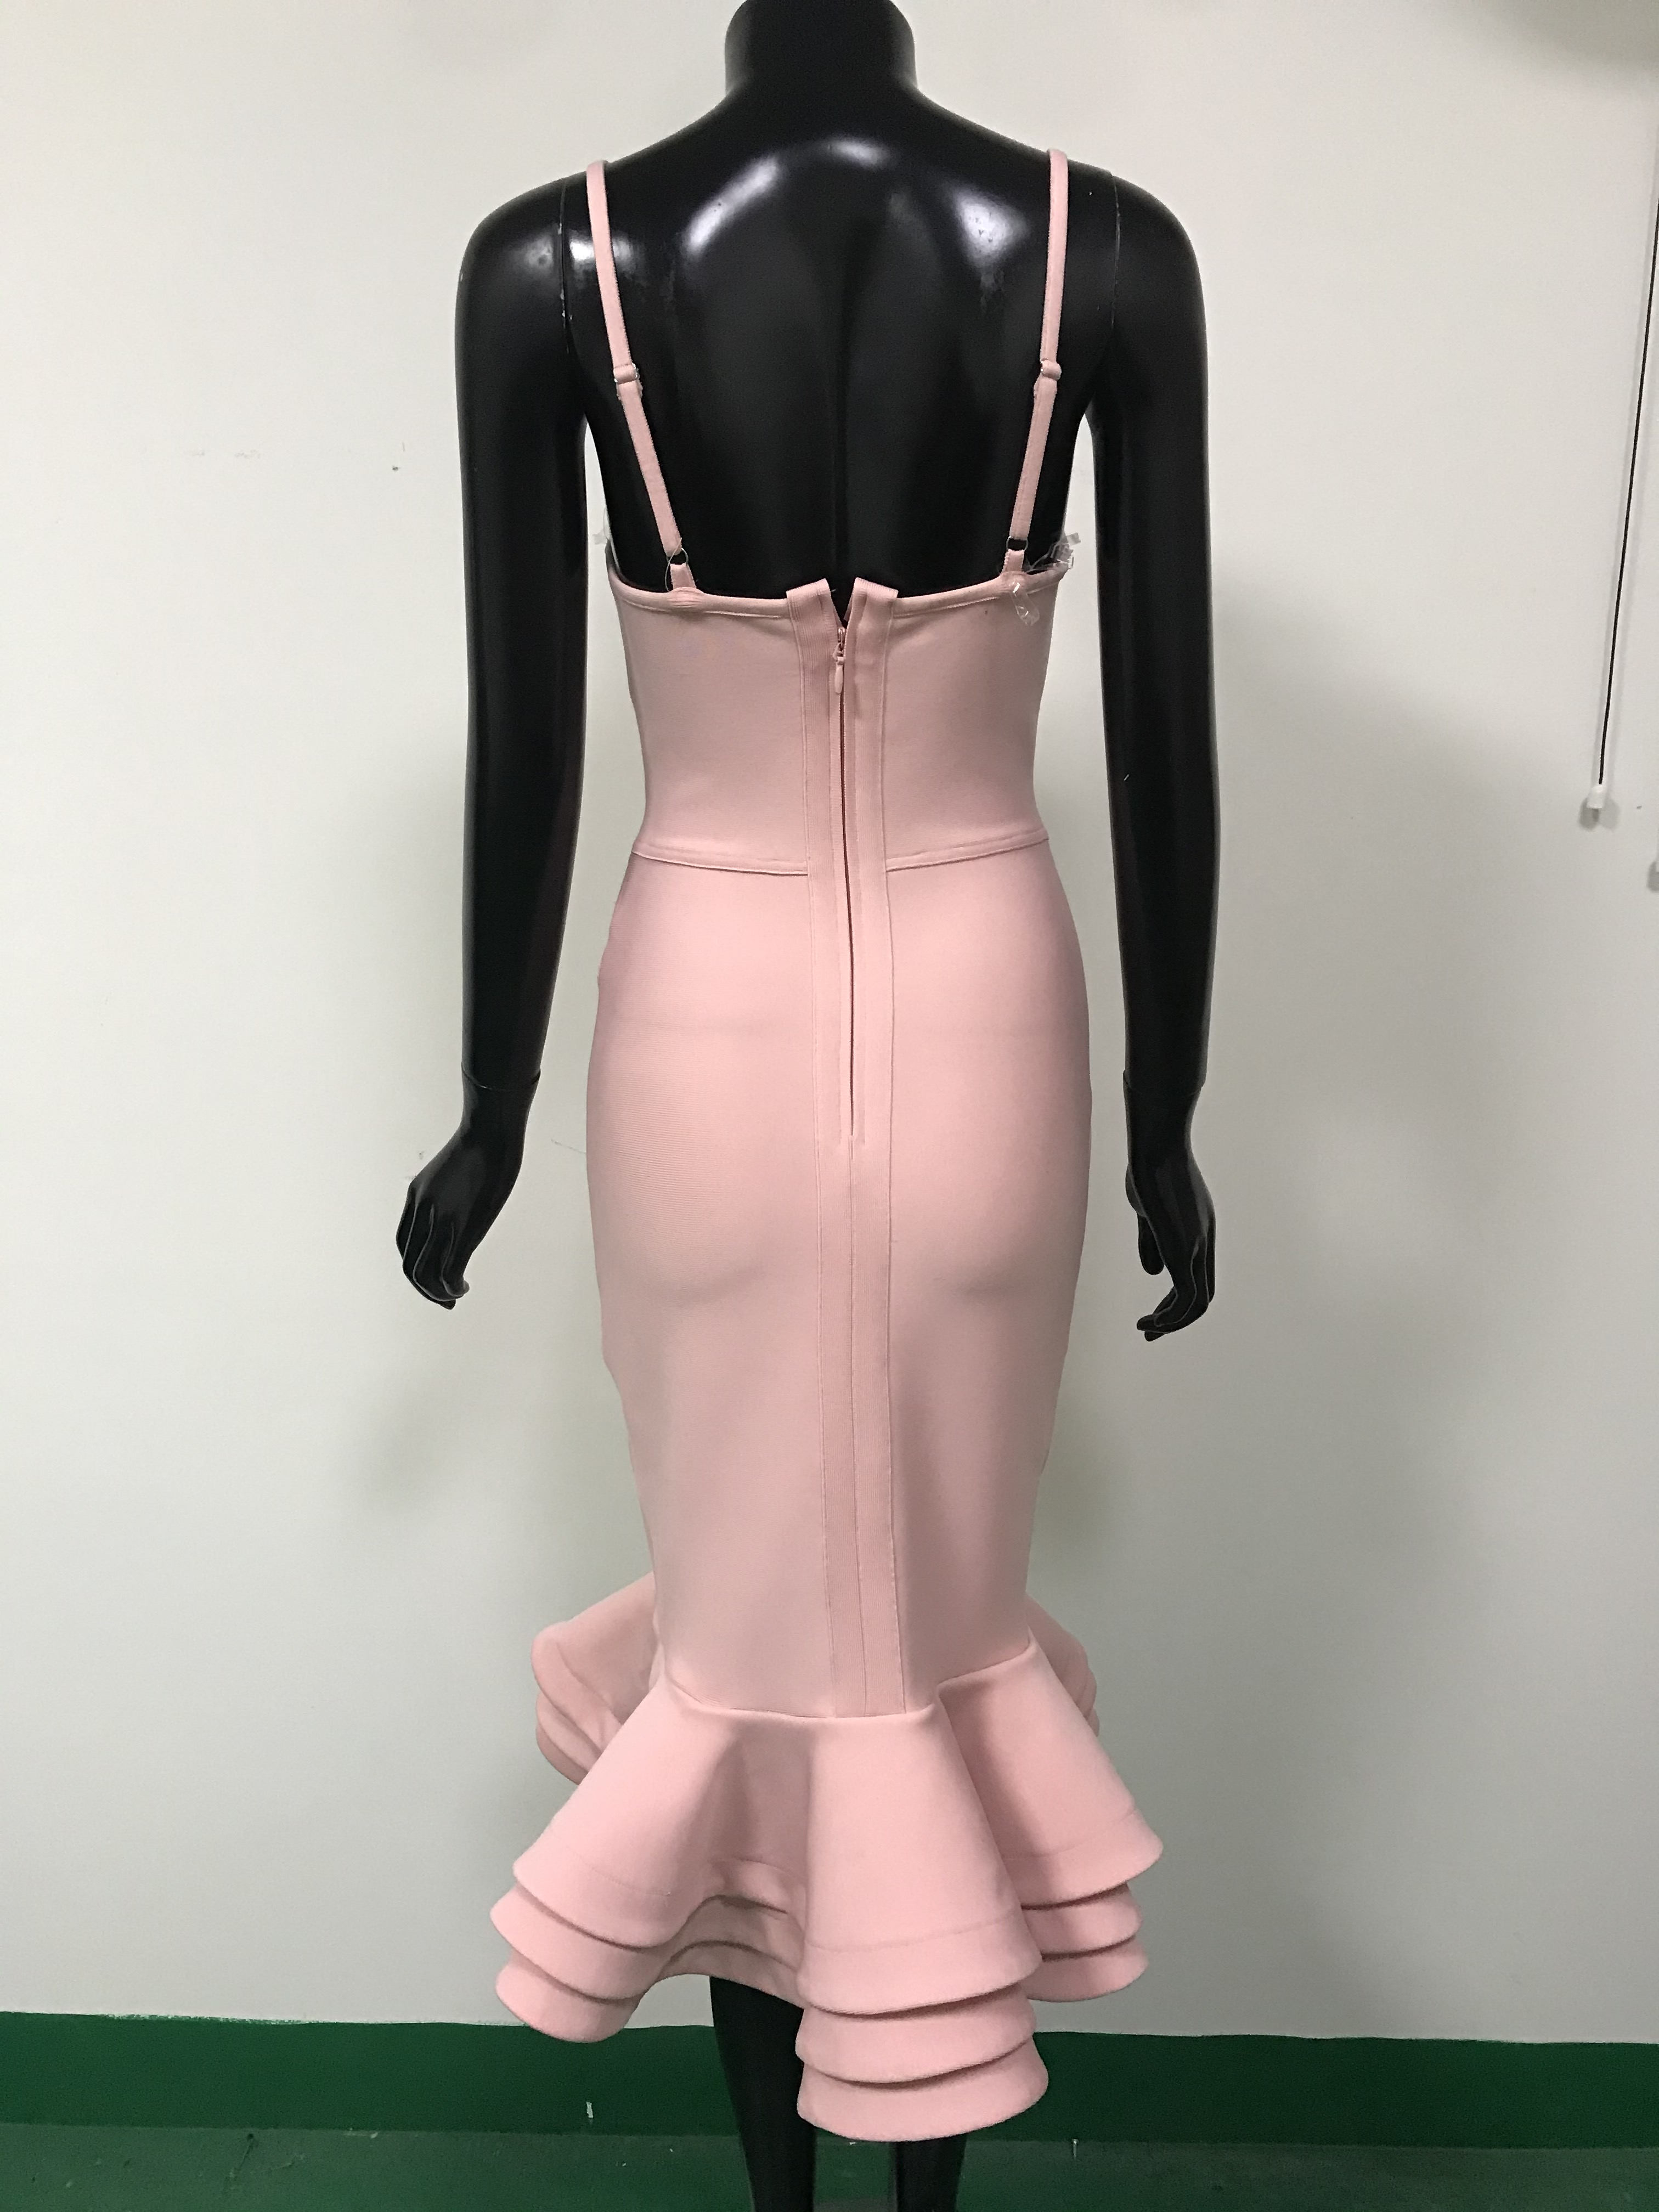 Hot Bodycon Bandage Dress 2020 Sexy V Neck Backless Ball Gown Pink Women Summer Dress Fashion Evening Party Dress Vestido 4